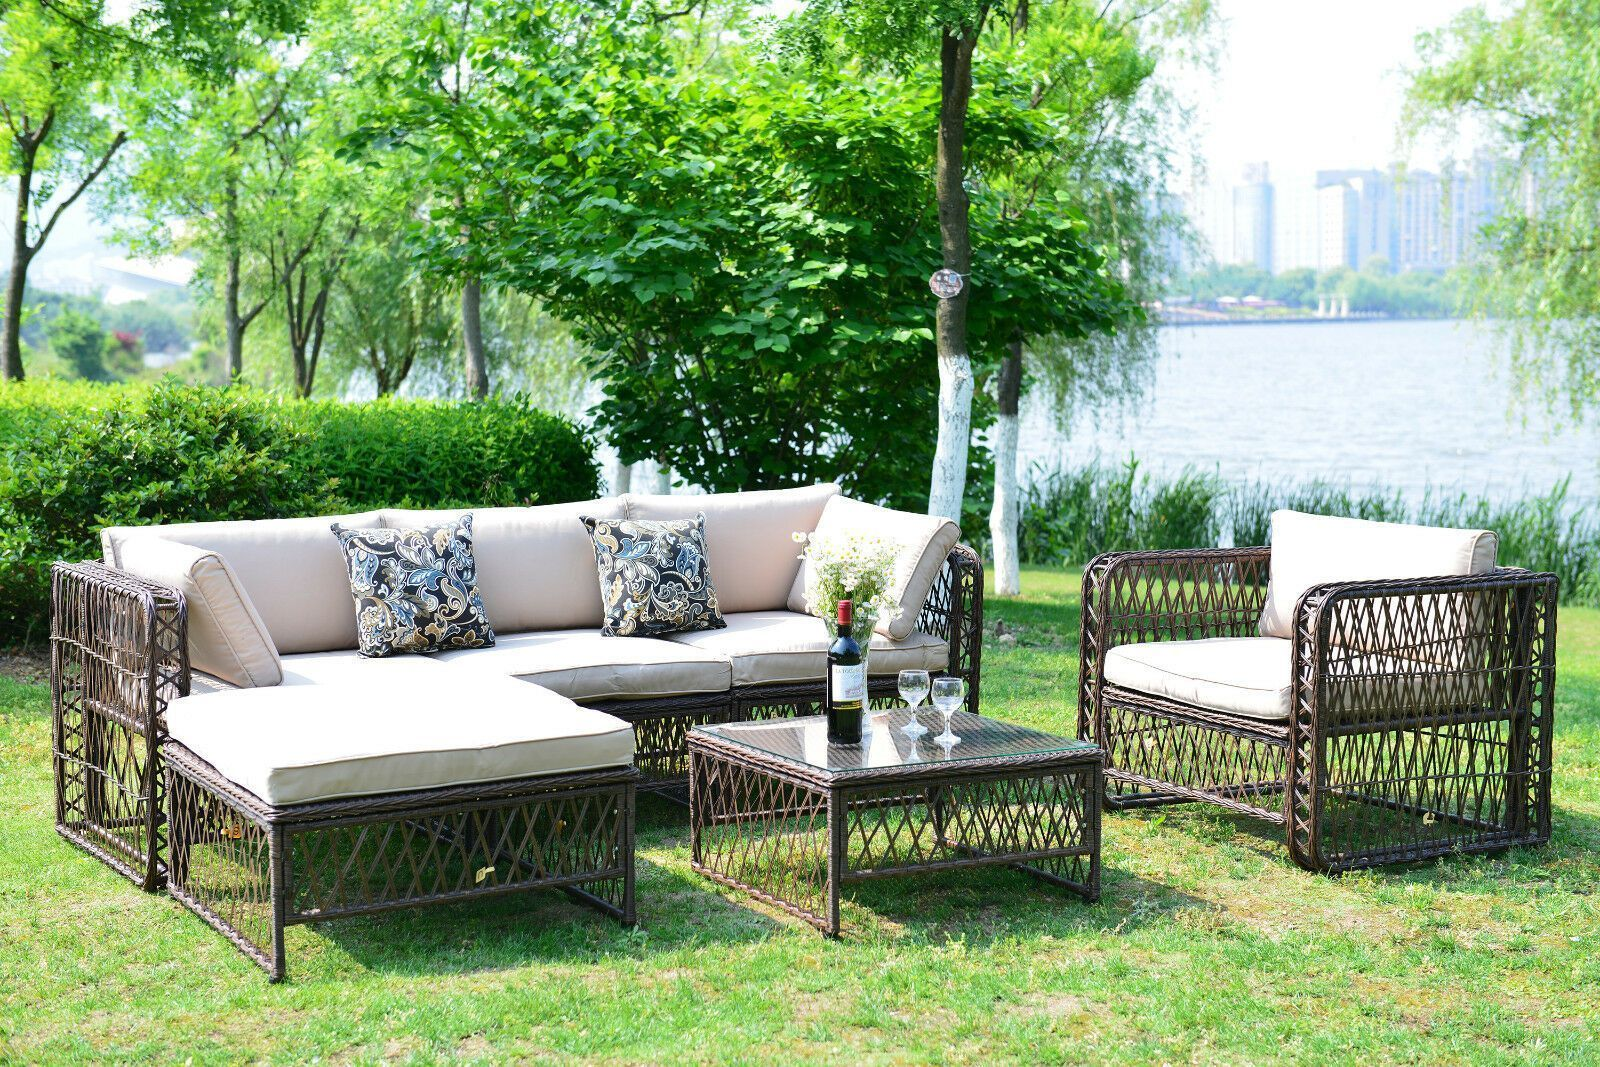 Outdoor Patio Furniture Wicker Rattan Sofa Sectional Cushioned